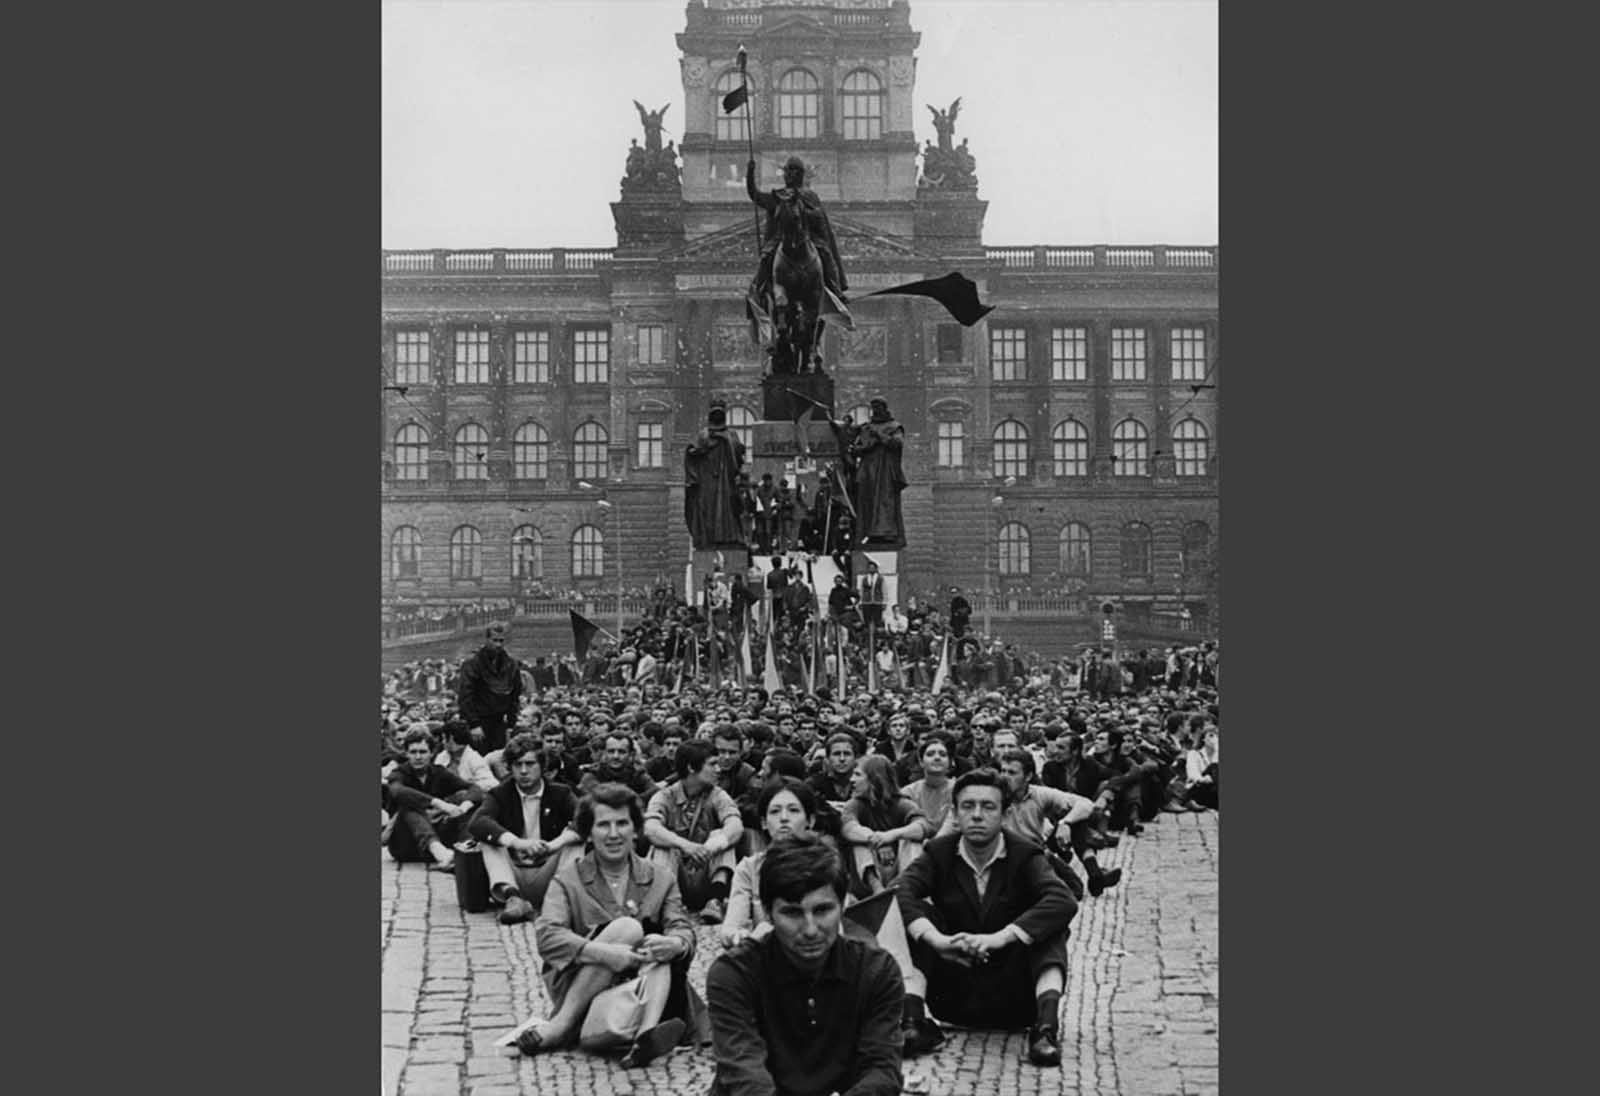 Thousands of protesters sit in Wenceslas Square, in downtown Prague, on August 24, 1968, demonstrating against the Soviet invasion.